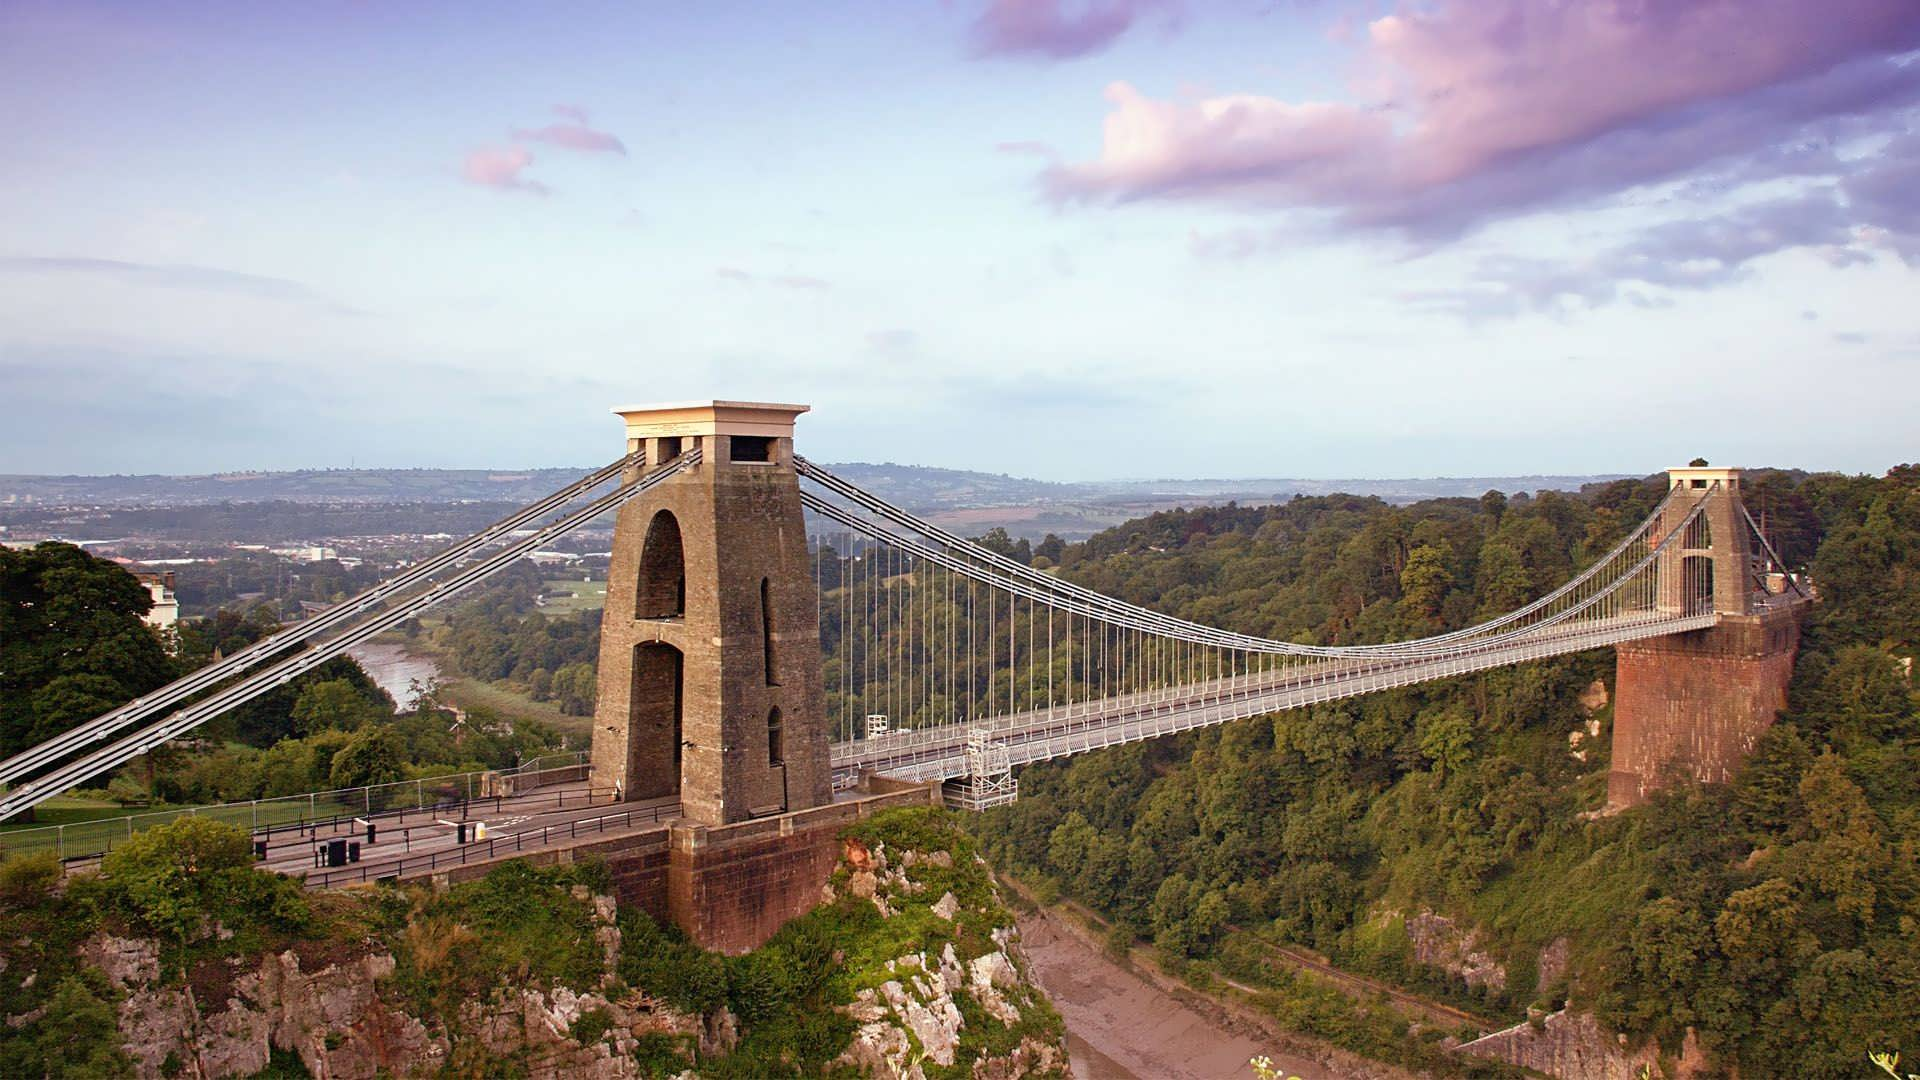 clifton_suspension_bridge_14_desktop_1920x1080_hd-wallpaper-929009